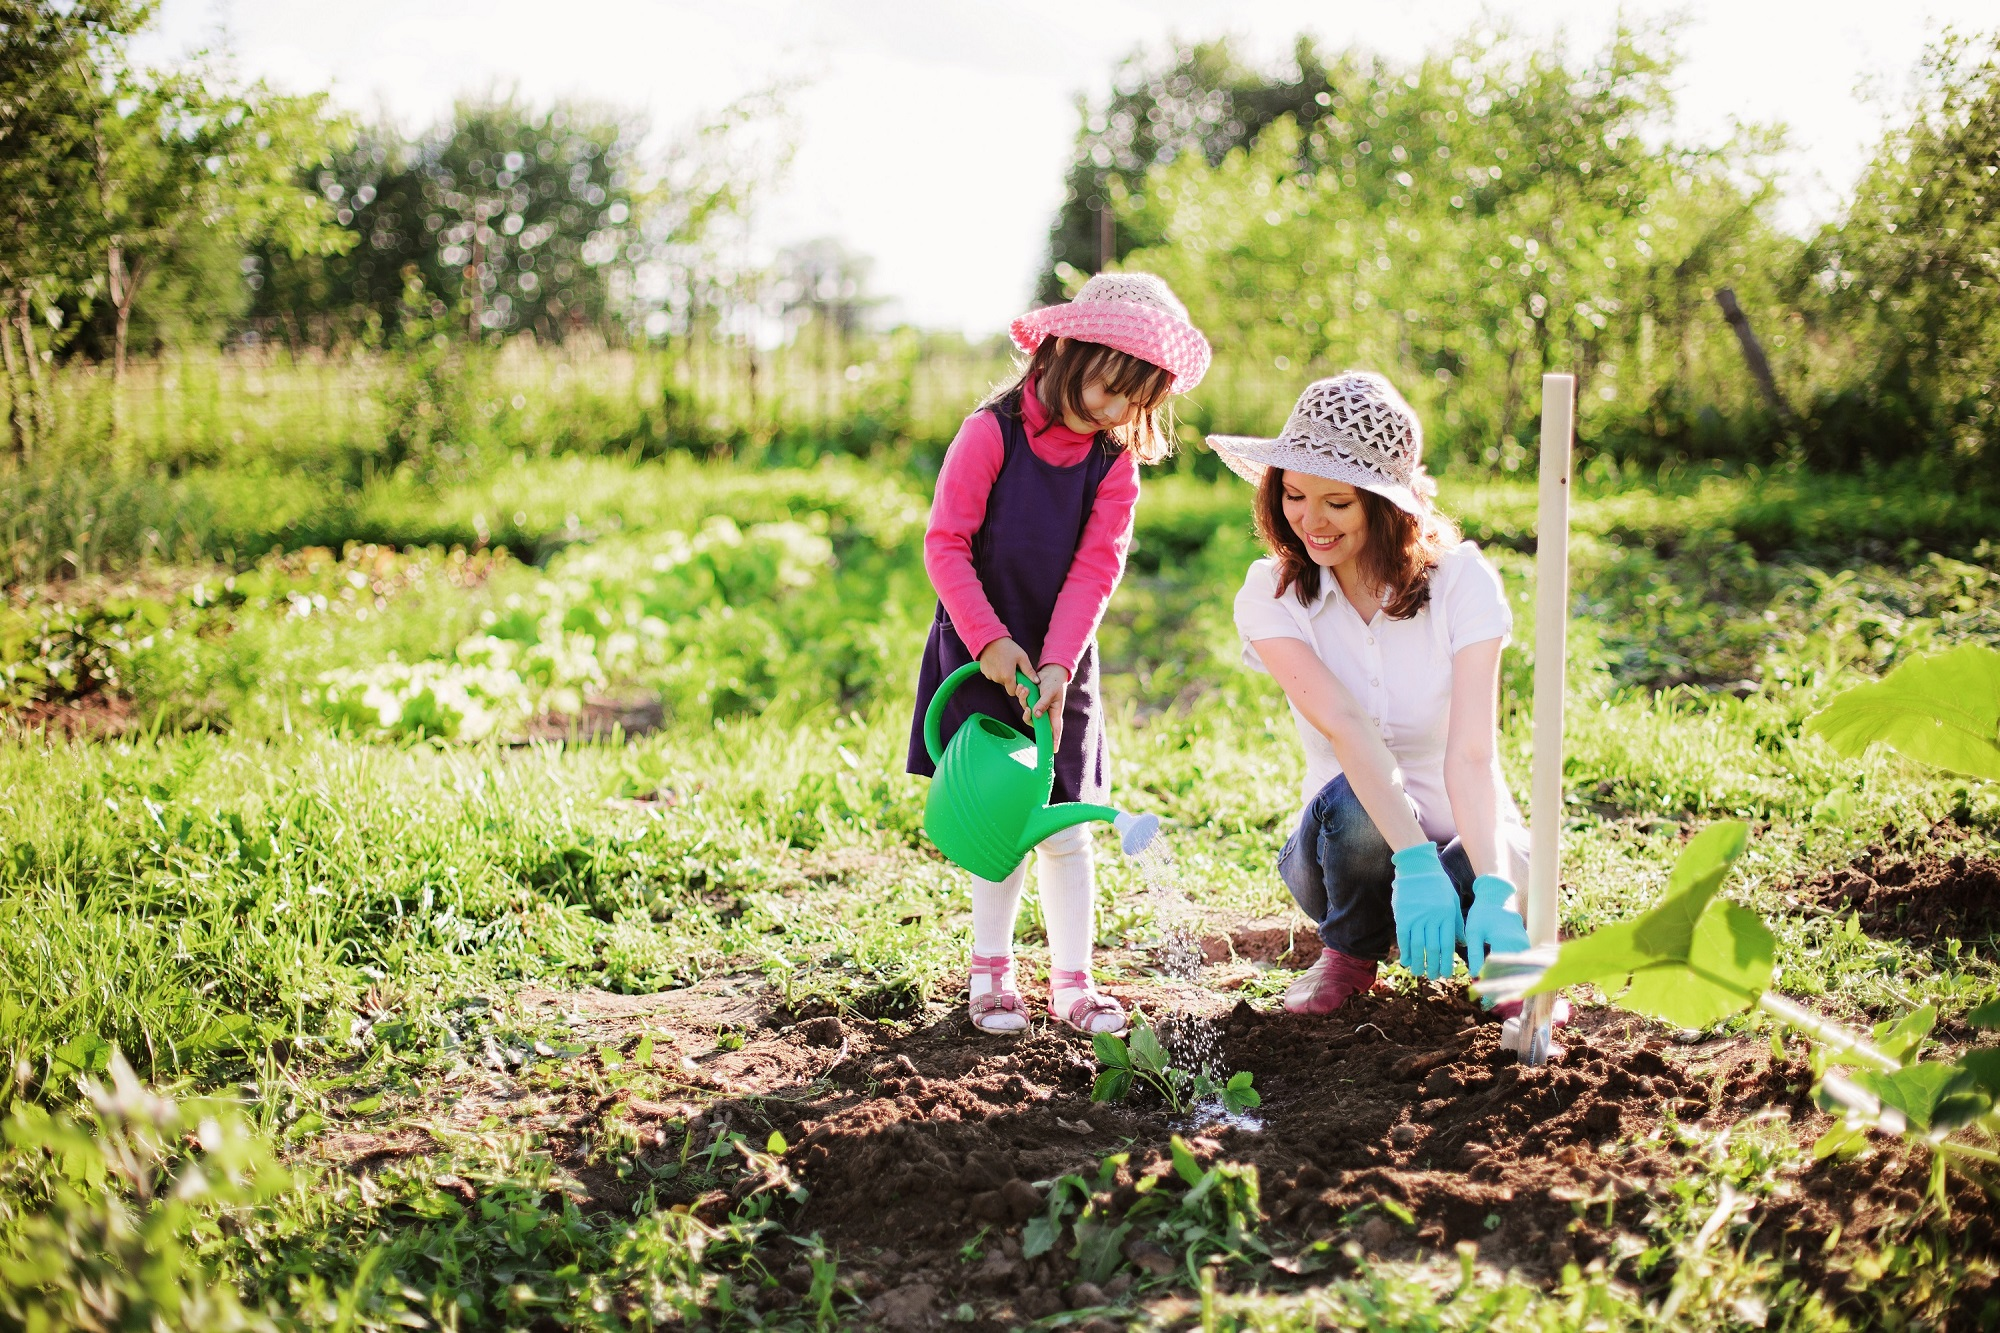 Priority Health - Personal Wellness - Fun Summer Activities - Gardening